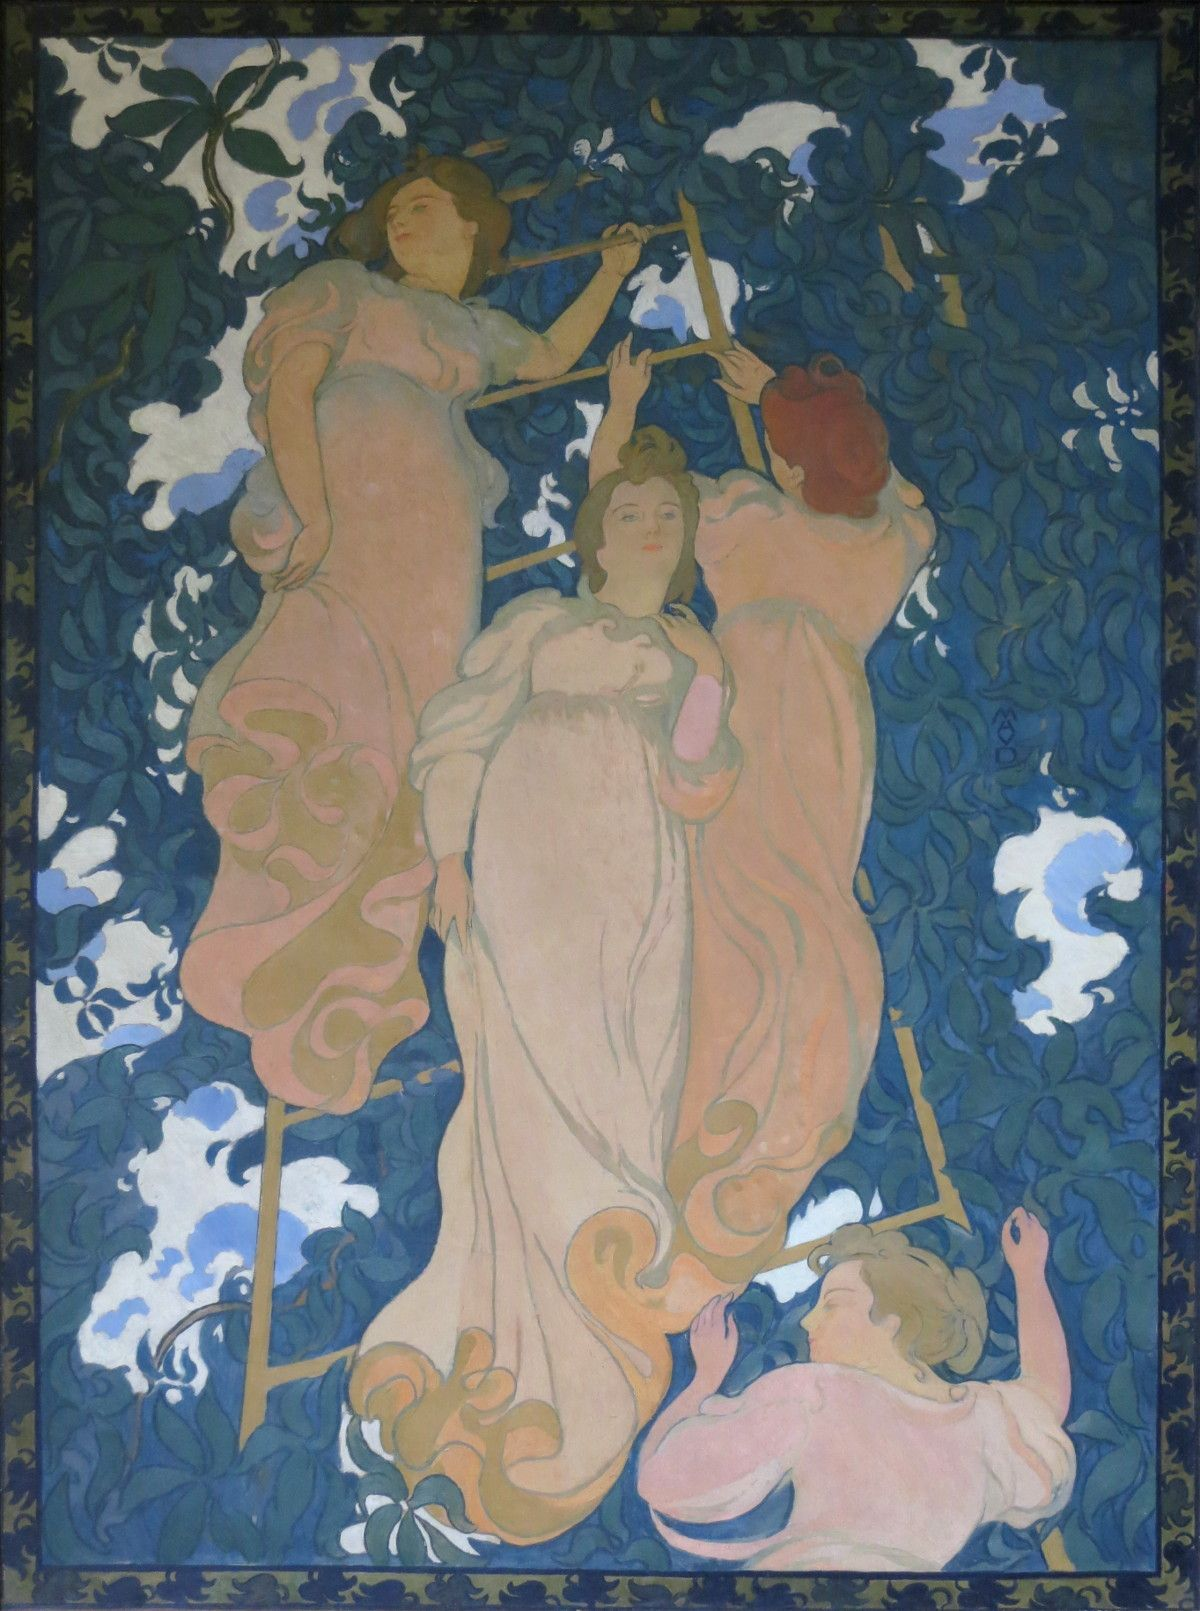 Image by French artist Maurice Denis of women climbing a ladder.